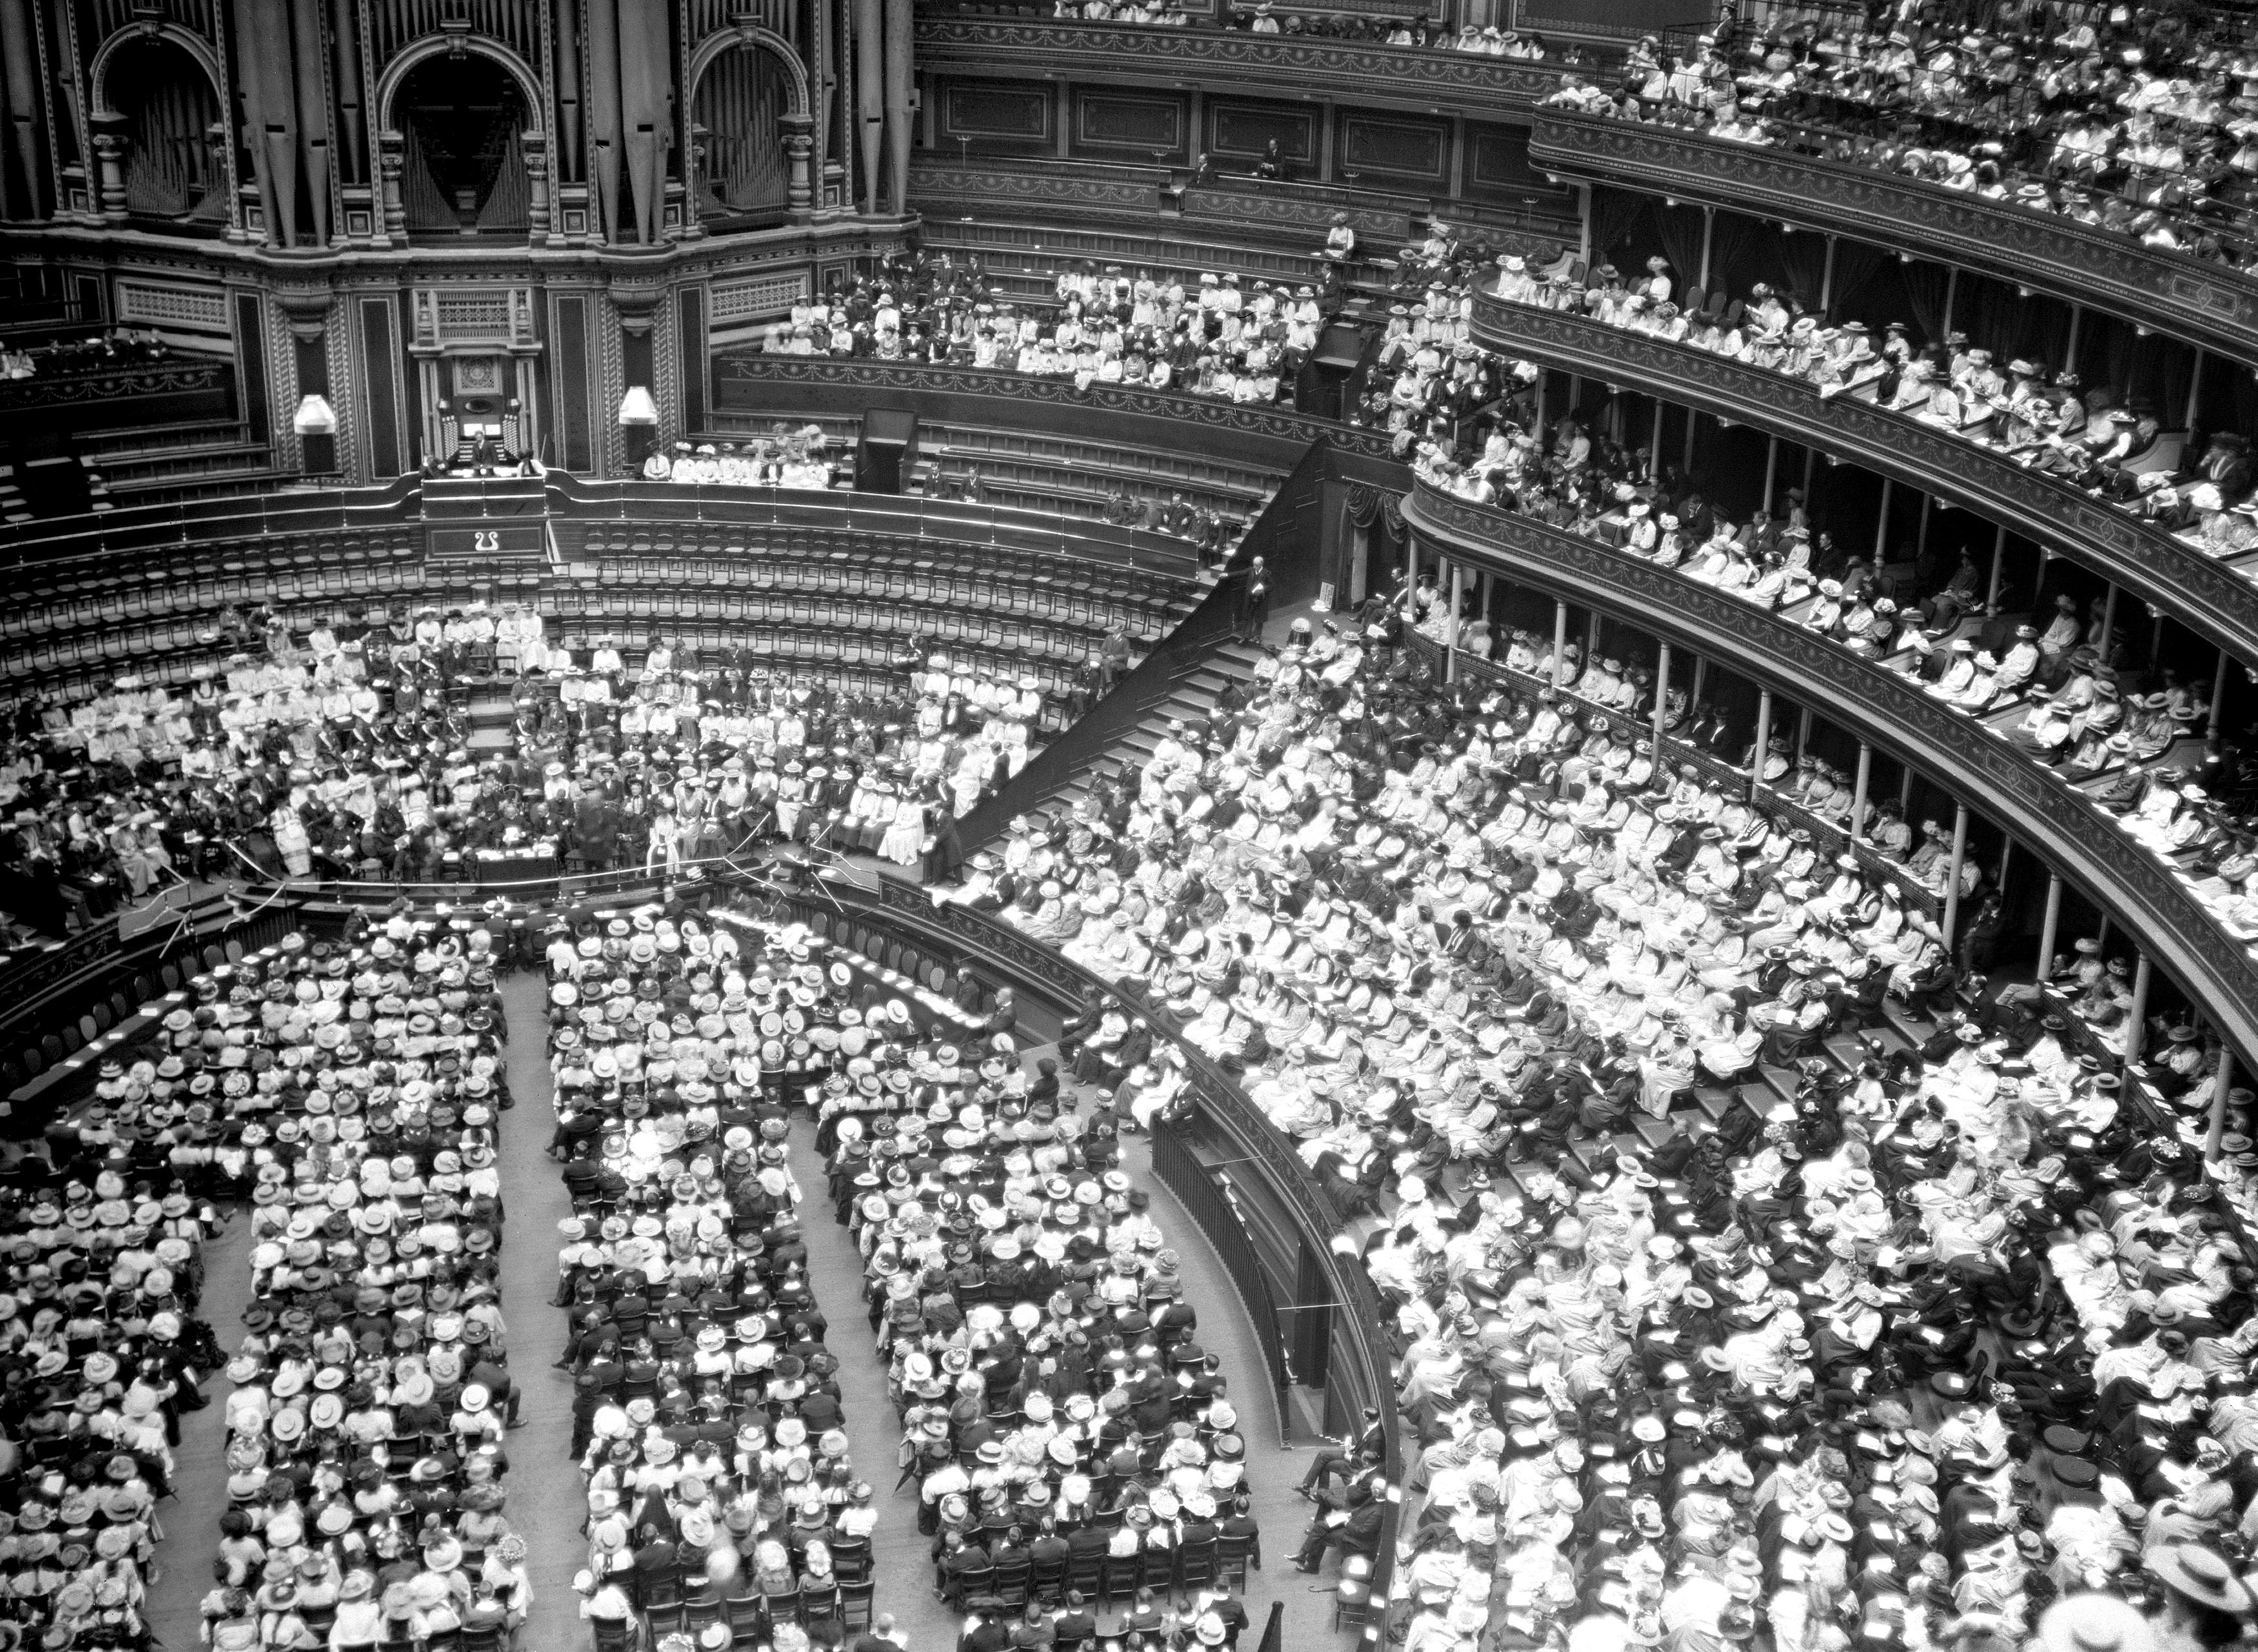 Suffragettes during a mass meeting at the Royal Albert Hall in 1913 (PA)